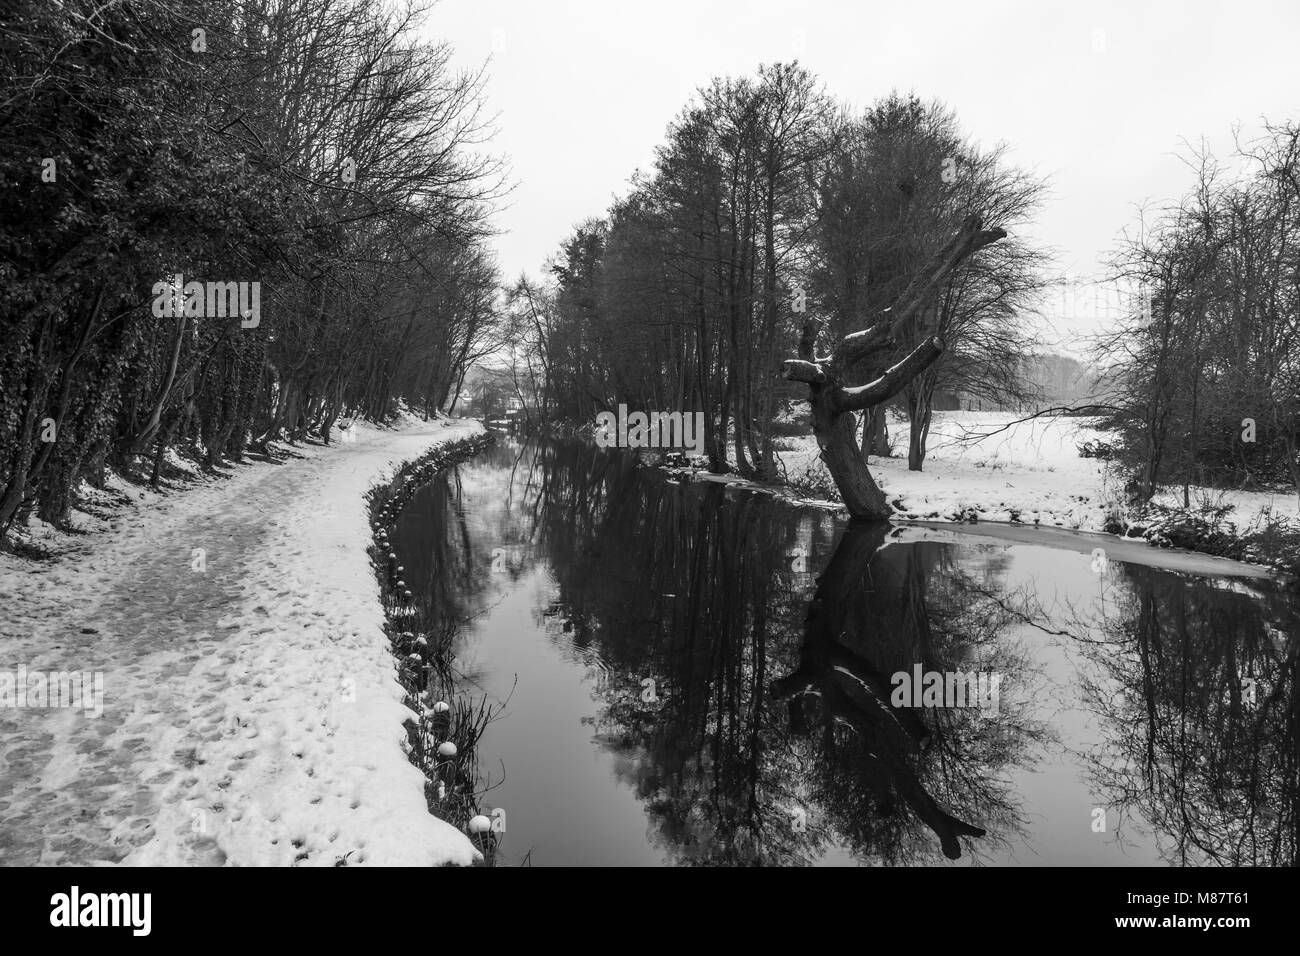 Snow covers the towpath of the Llangollen canal during late winter, near Chirk Bank - Stock Image